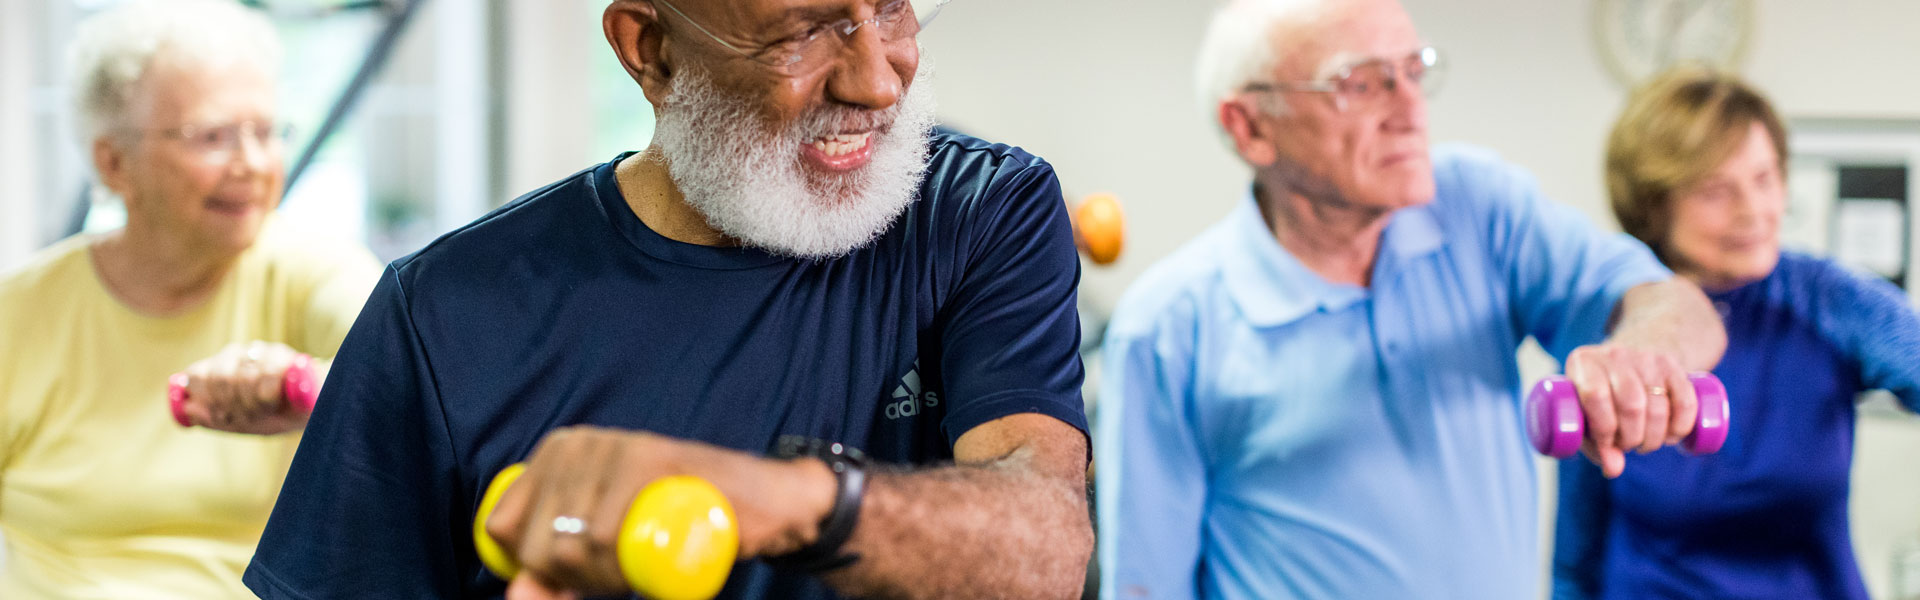 Senior Men Exercising at StoneRidge Independent Living